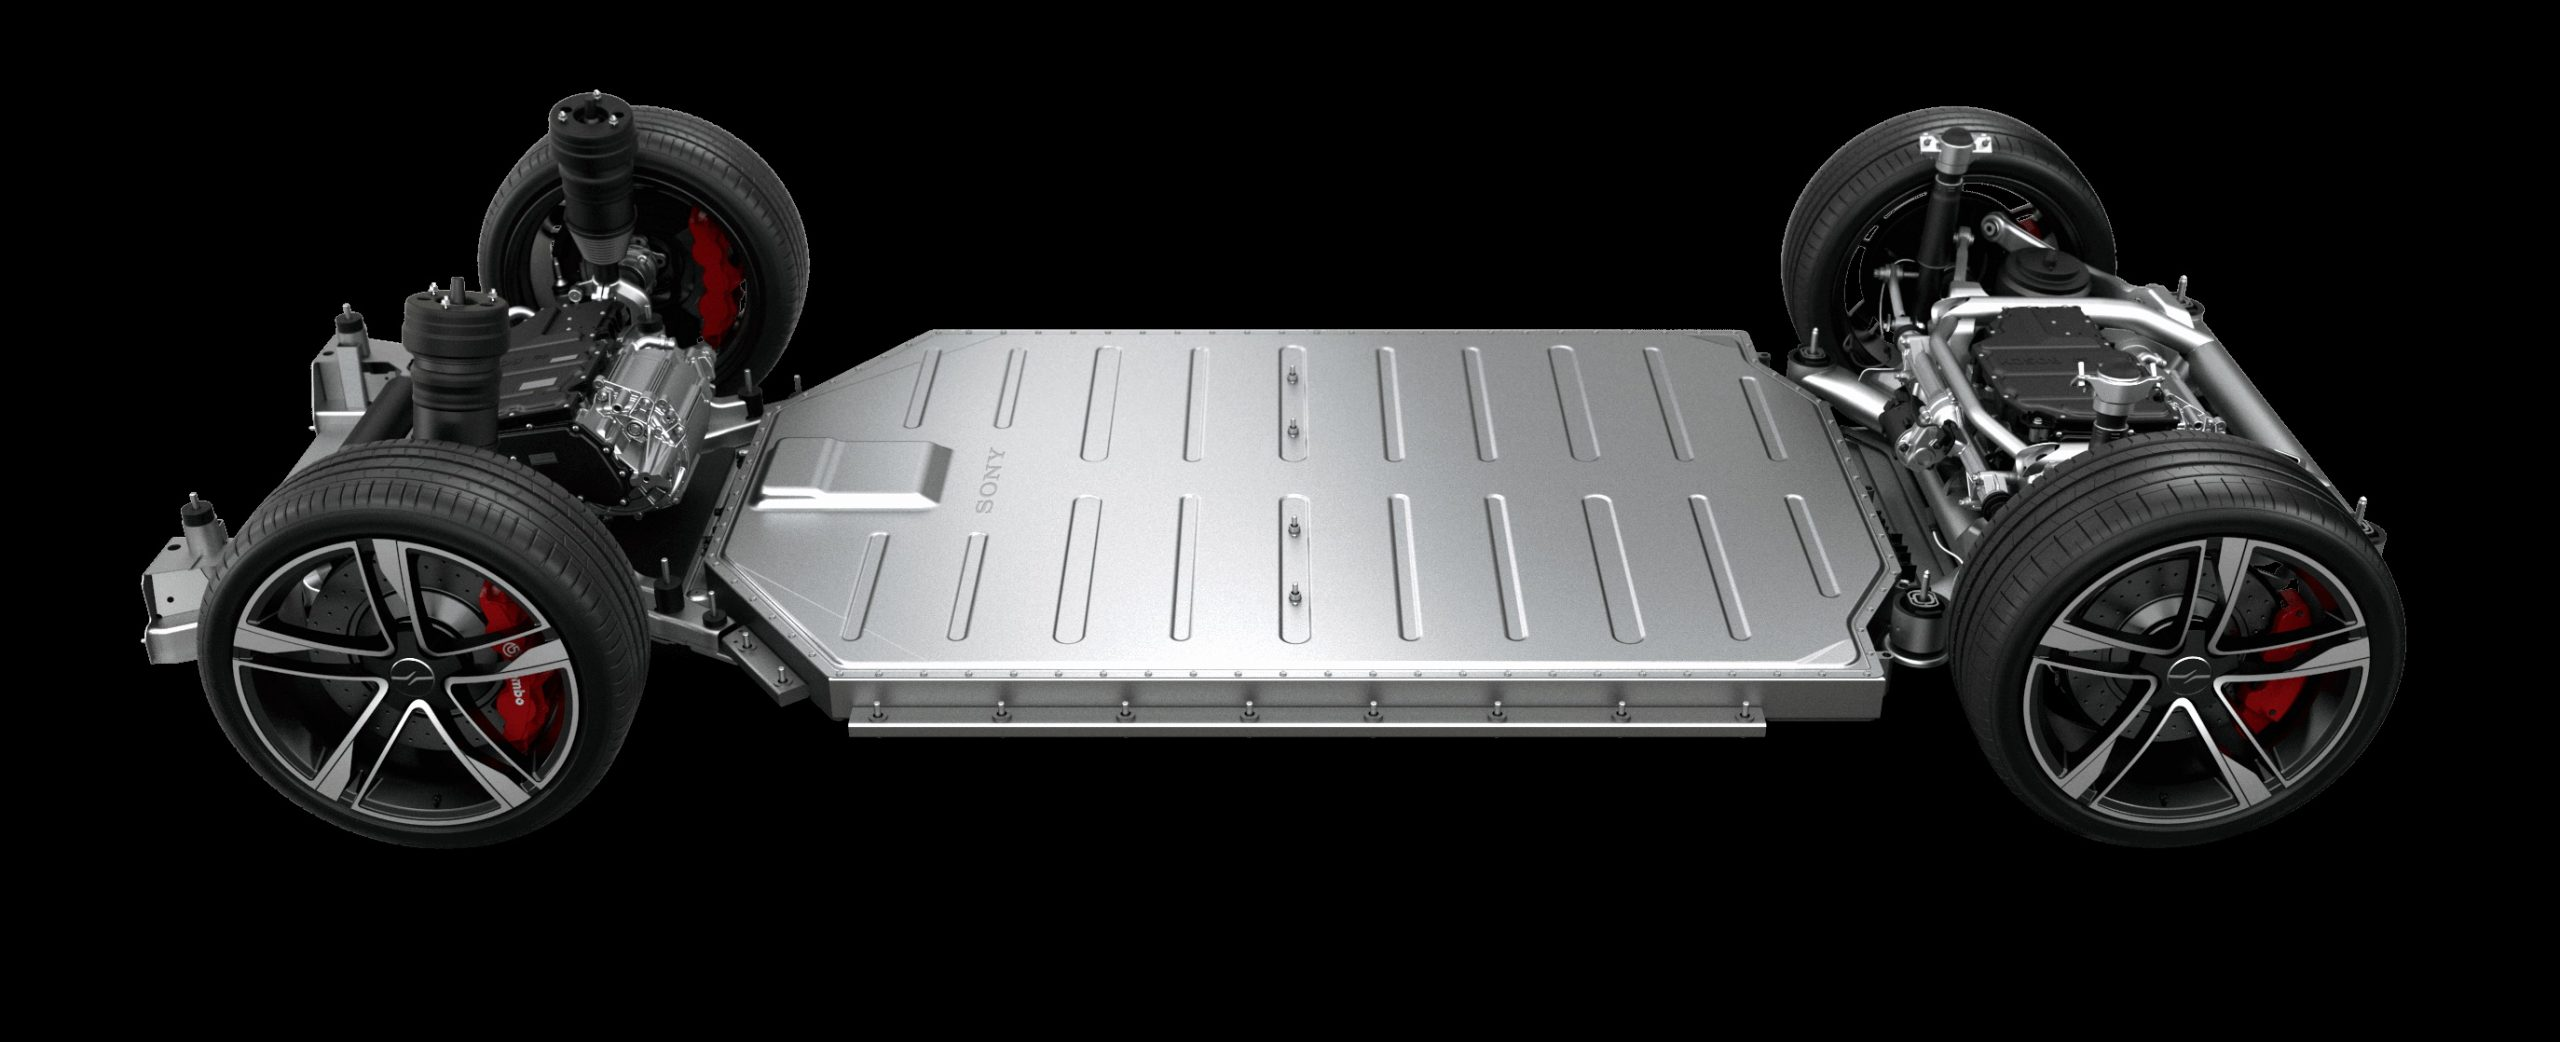 Sony VISION S concept 2020 18 scaled